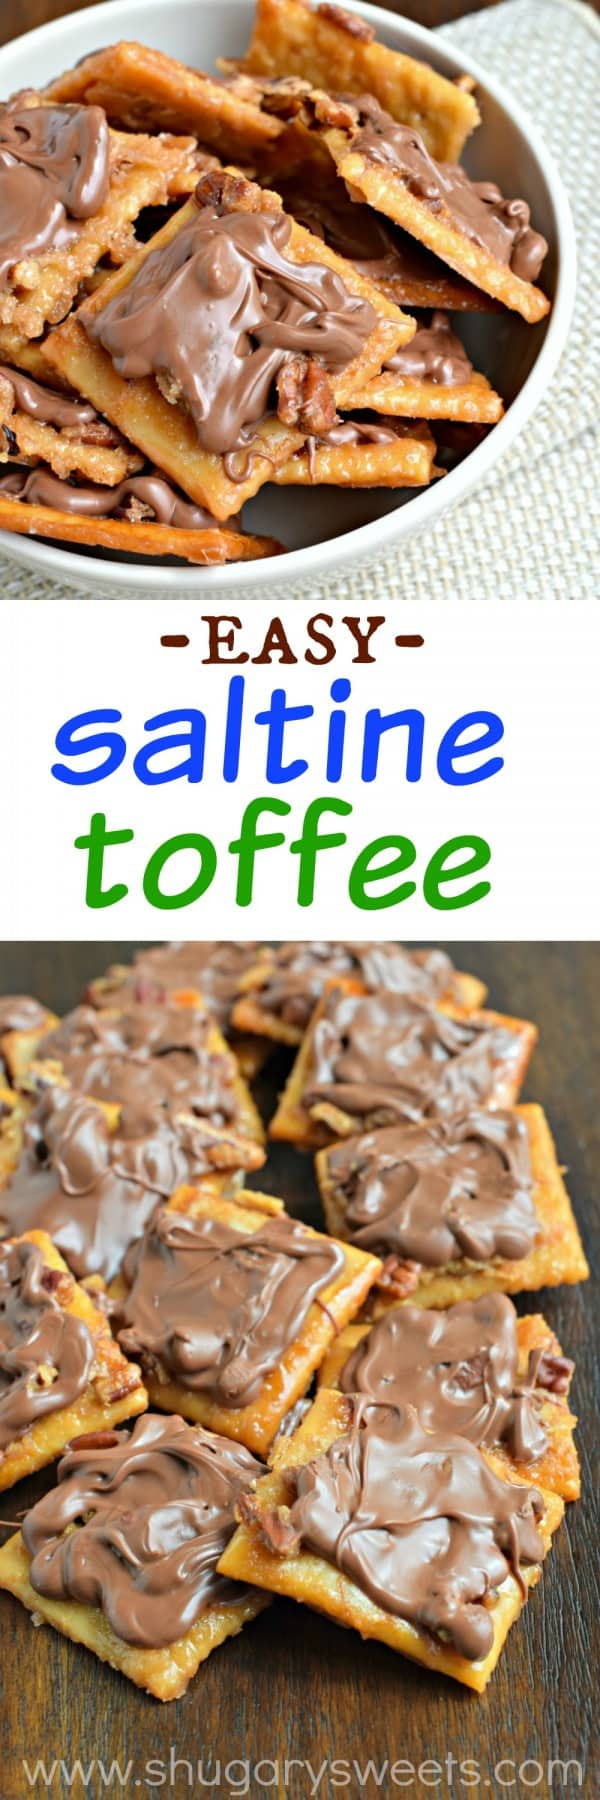 Saltine Toffee: super easy toffee recipe made with crackers! Crispy, buttery and out of this world delicious!